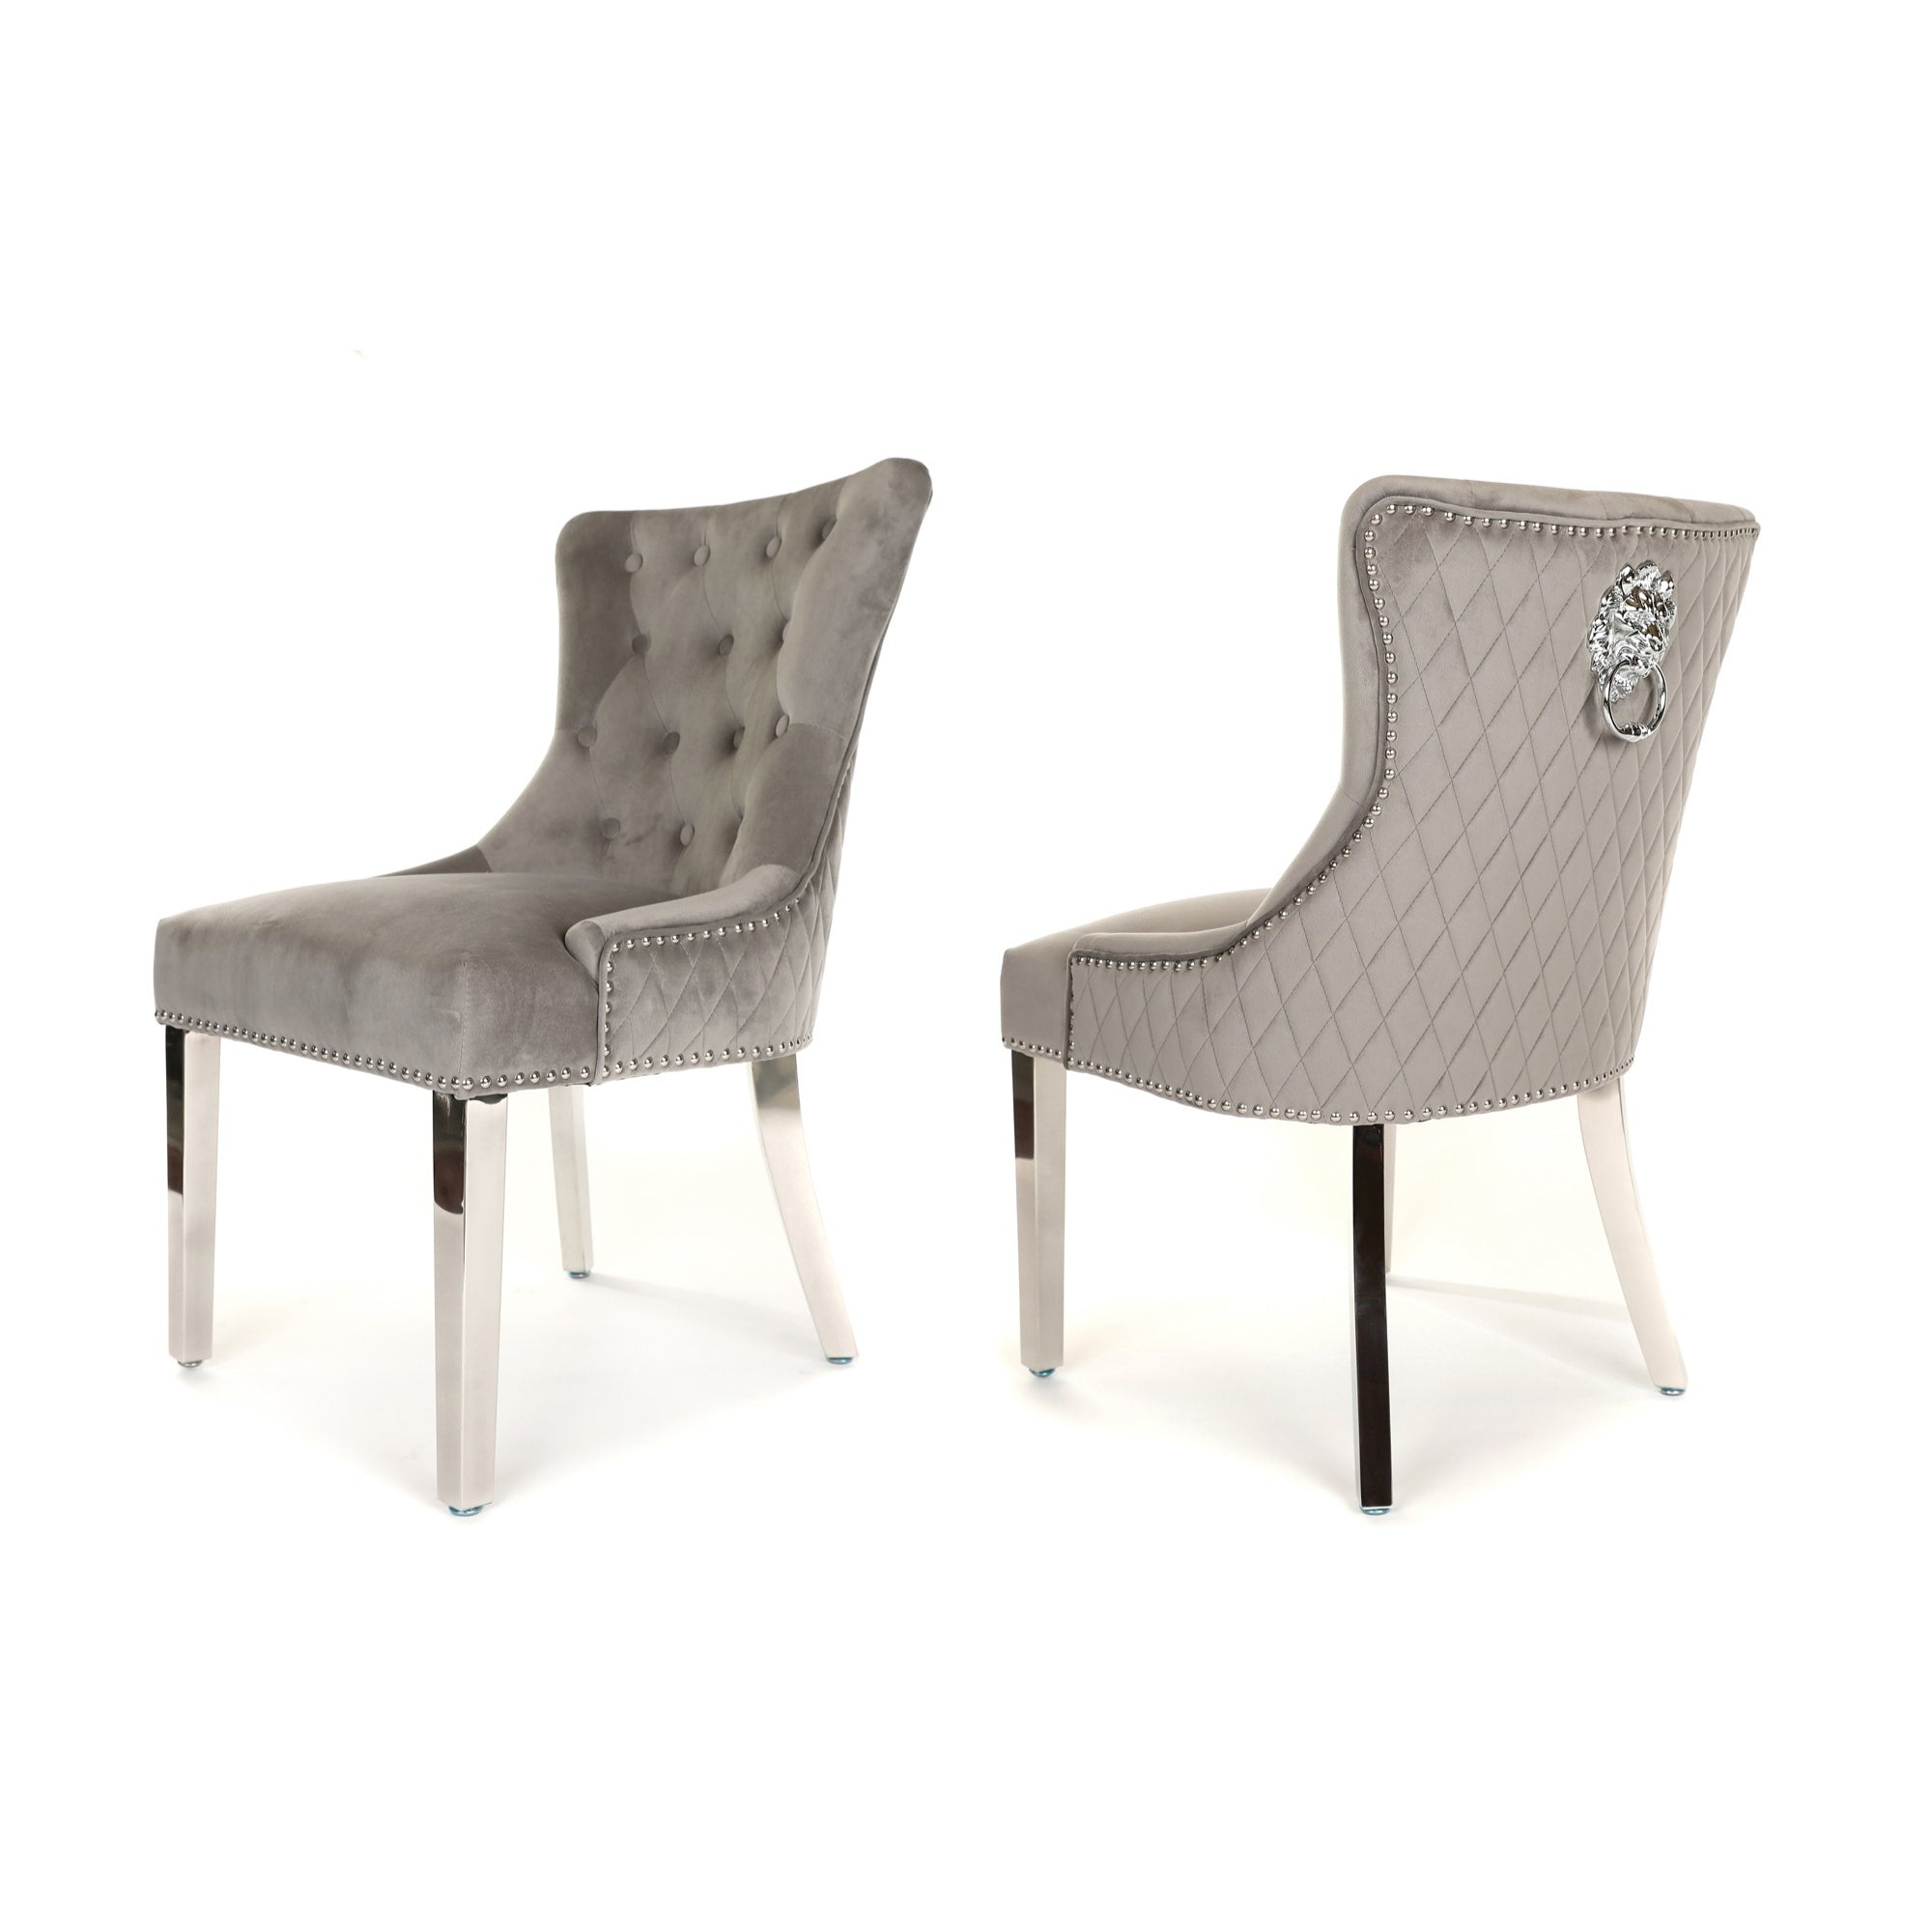 Simone Dining Chair upholstered in light grey velvet with stud detail, lion knocker and metal legs